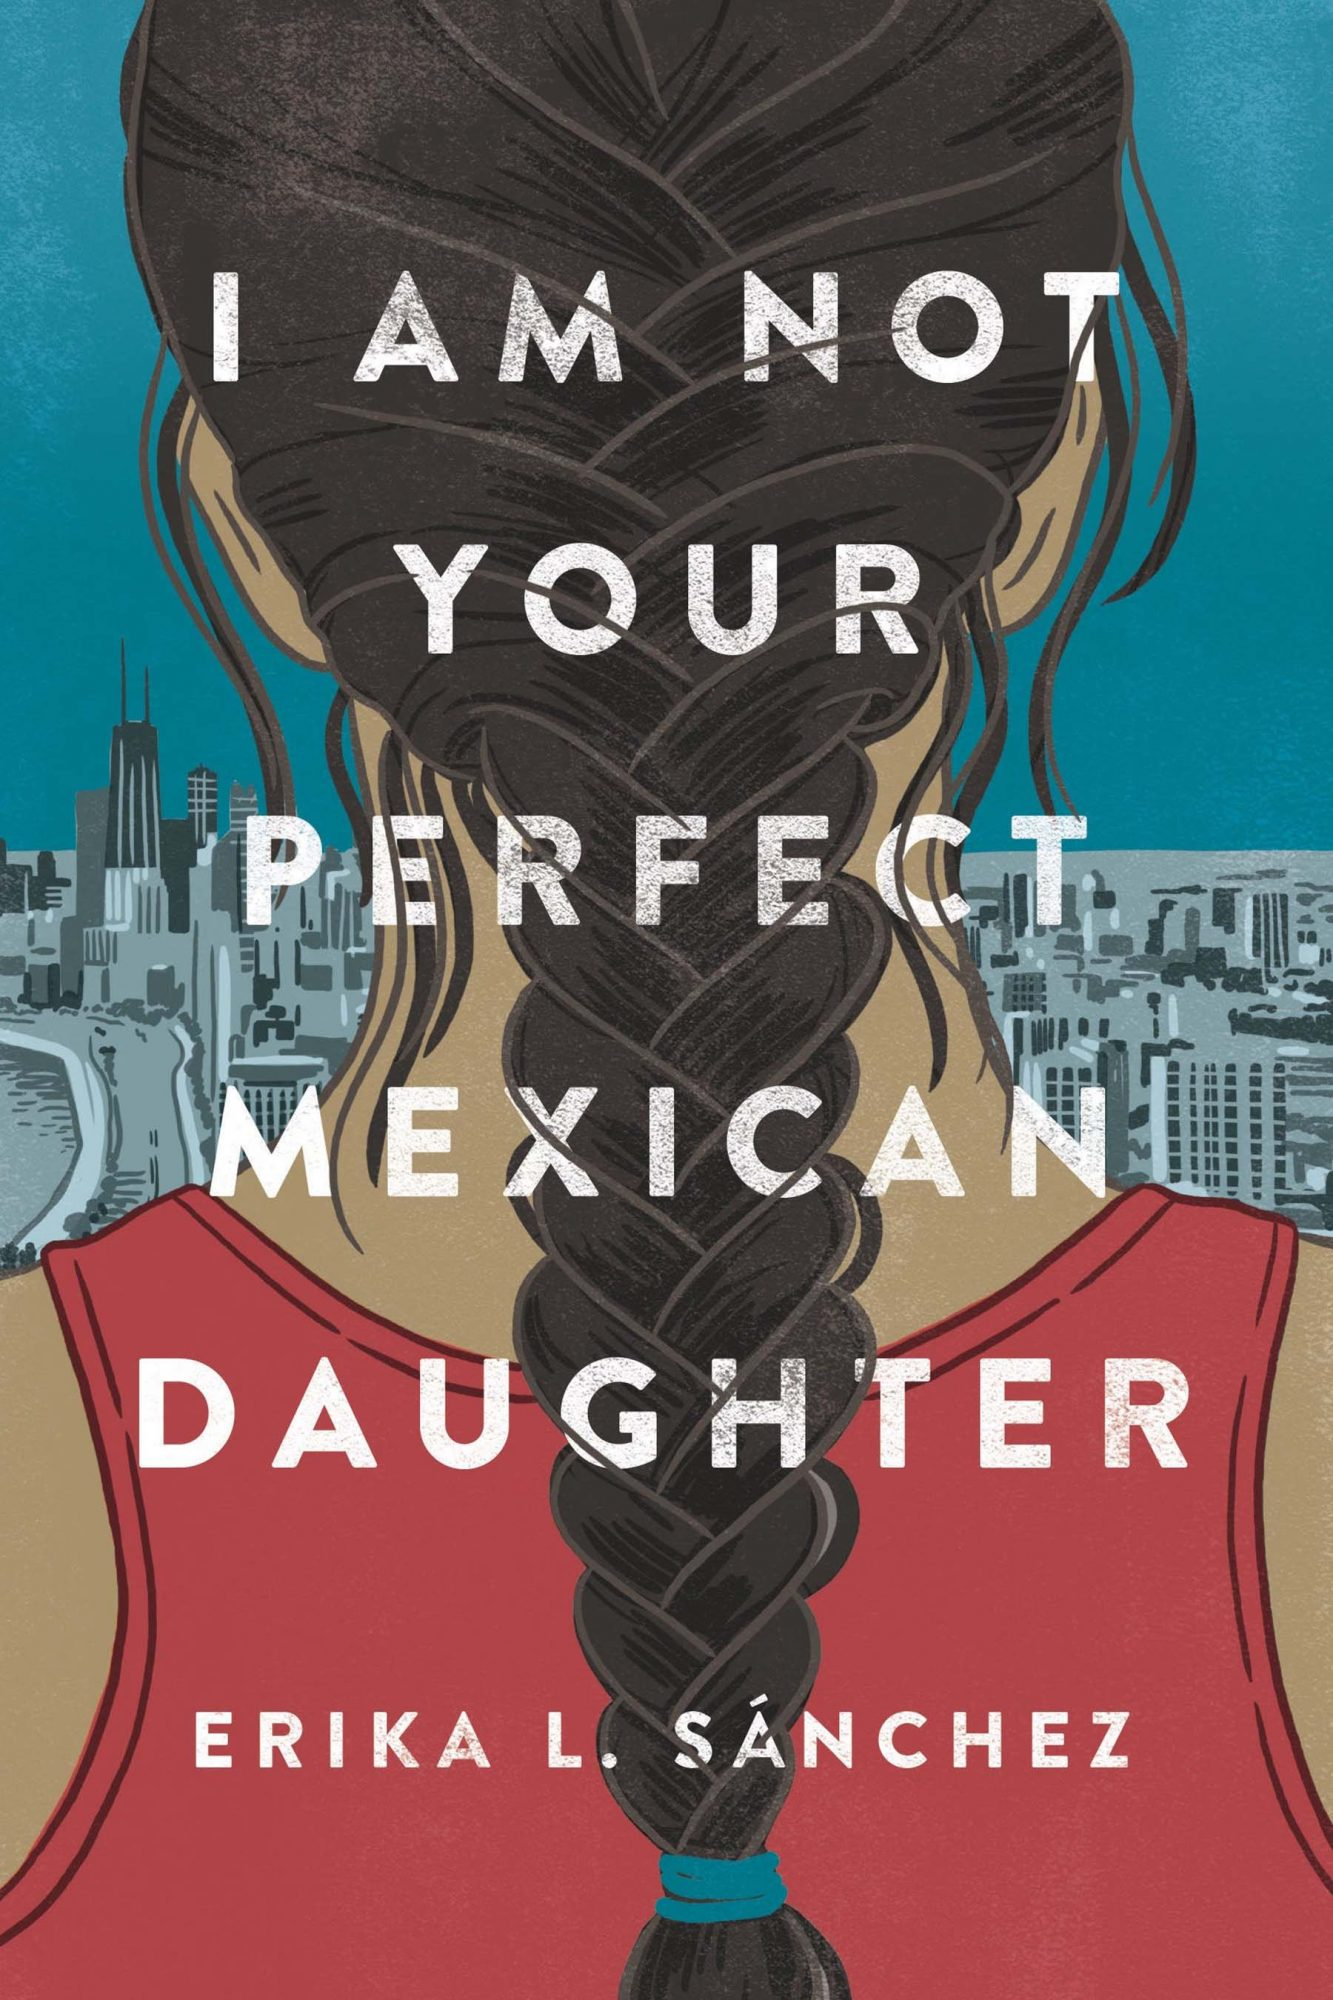 I-Am-Not-Your-Perfect-Mexican-Daughter